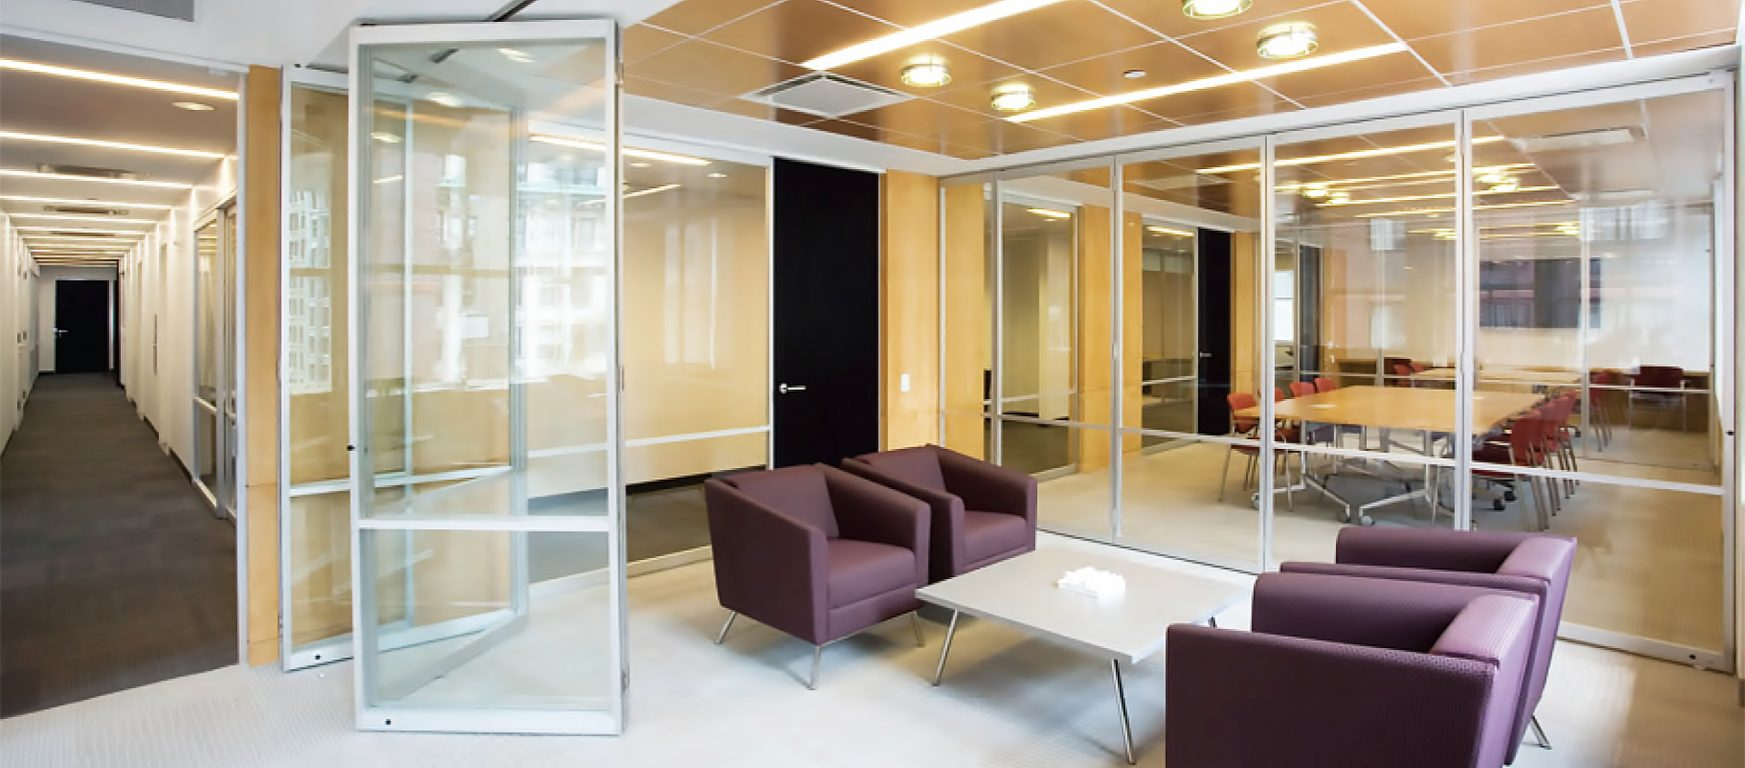 PK-30 Centerfold accordion glass walls